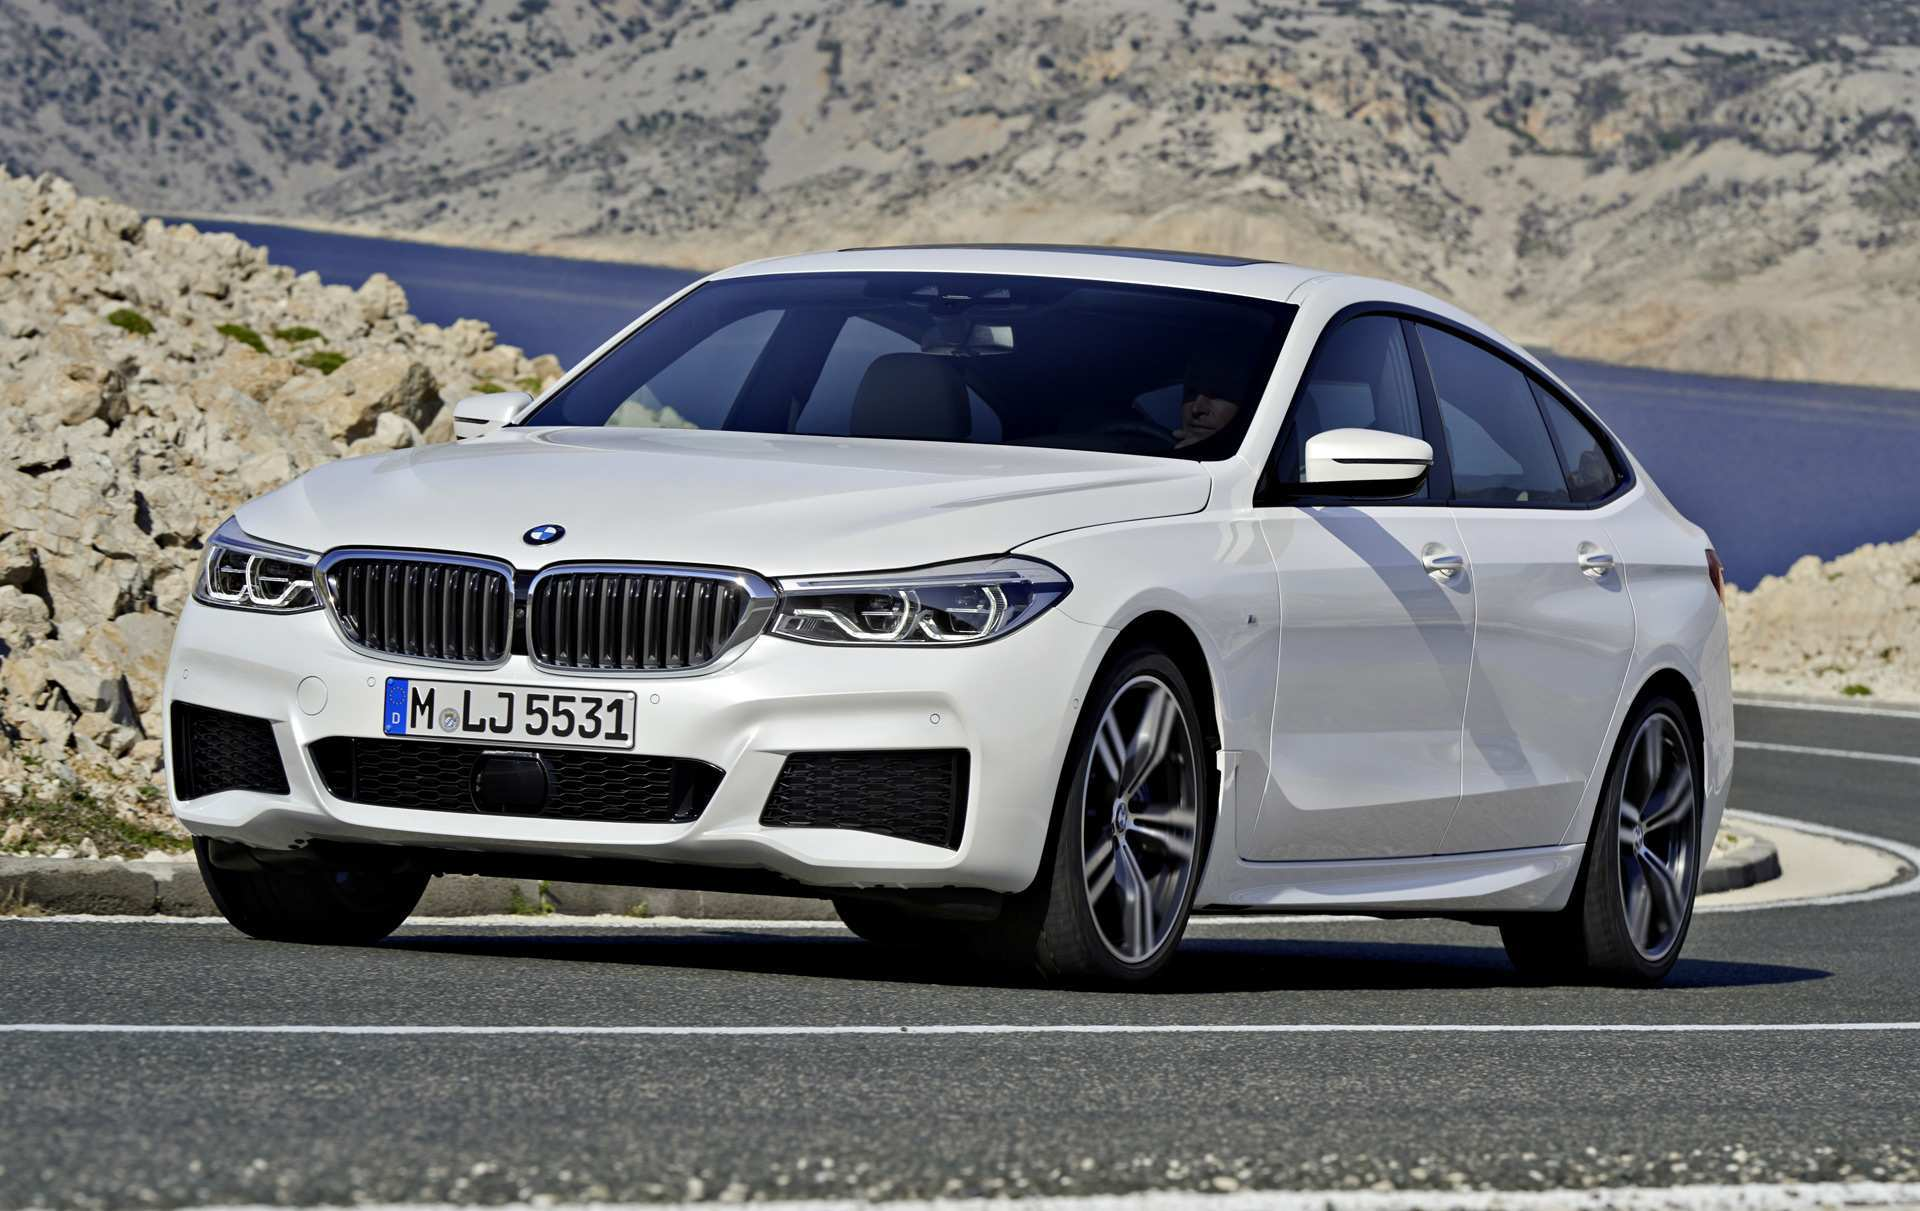 88 All New 2020 BMW 6 Pictures by 2020 BMW 6